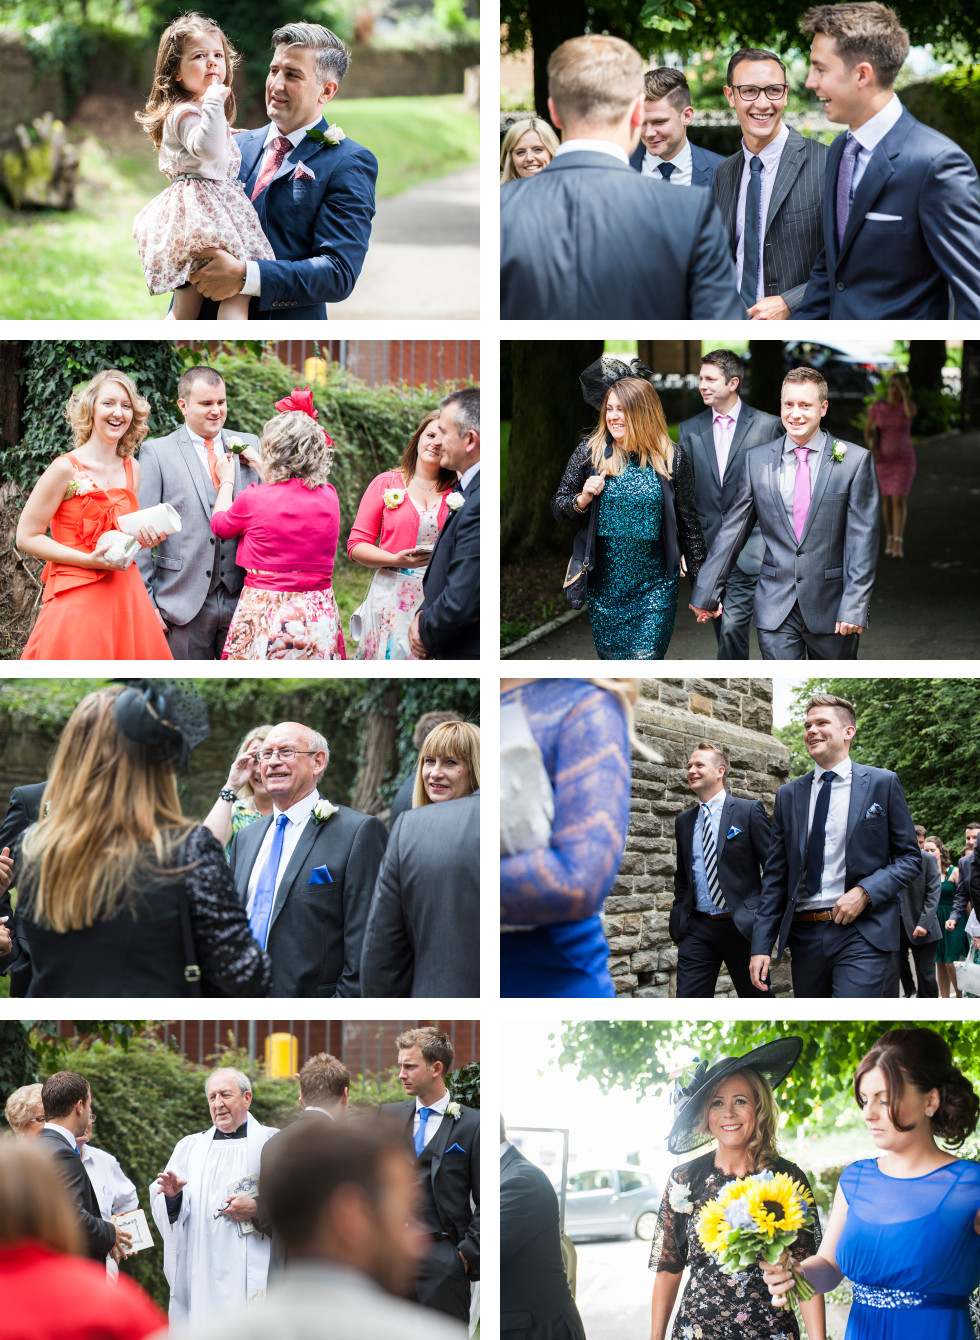 Sarah & Matt wedding Bryn Meadows collage 2